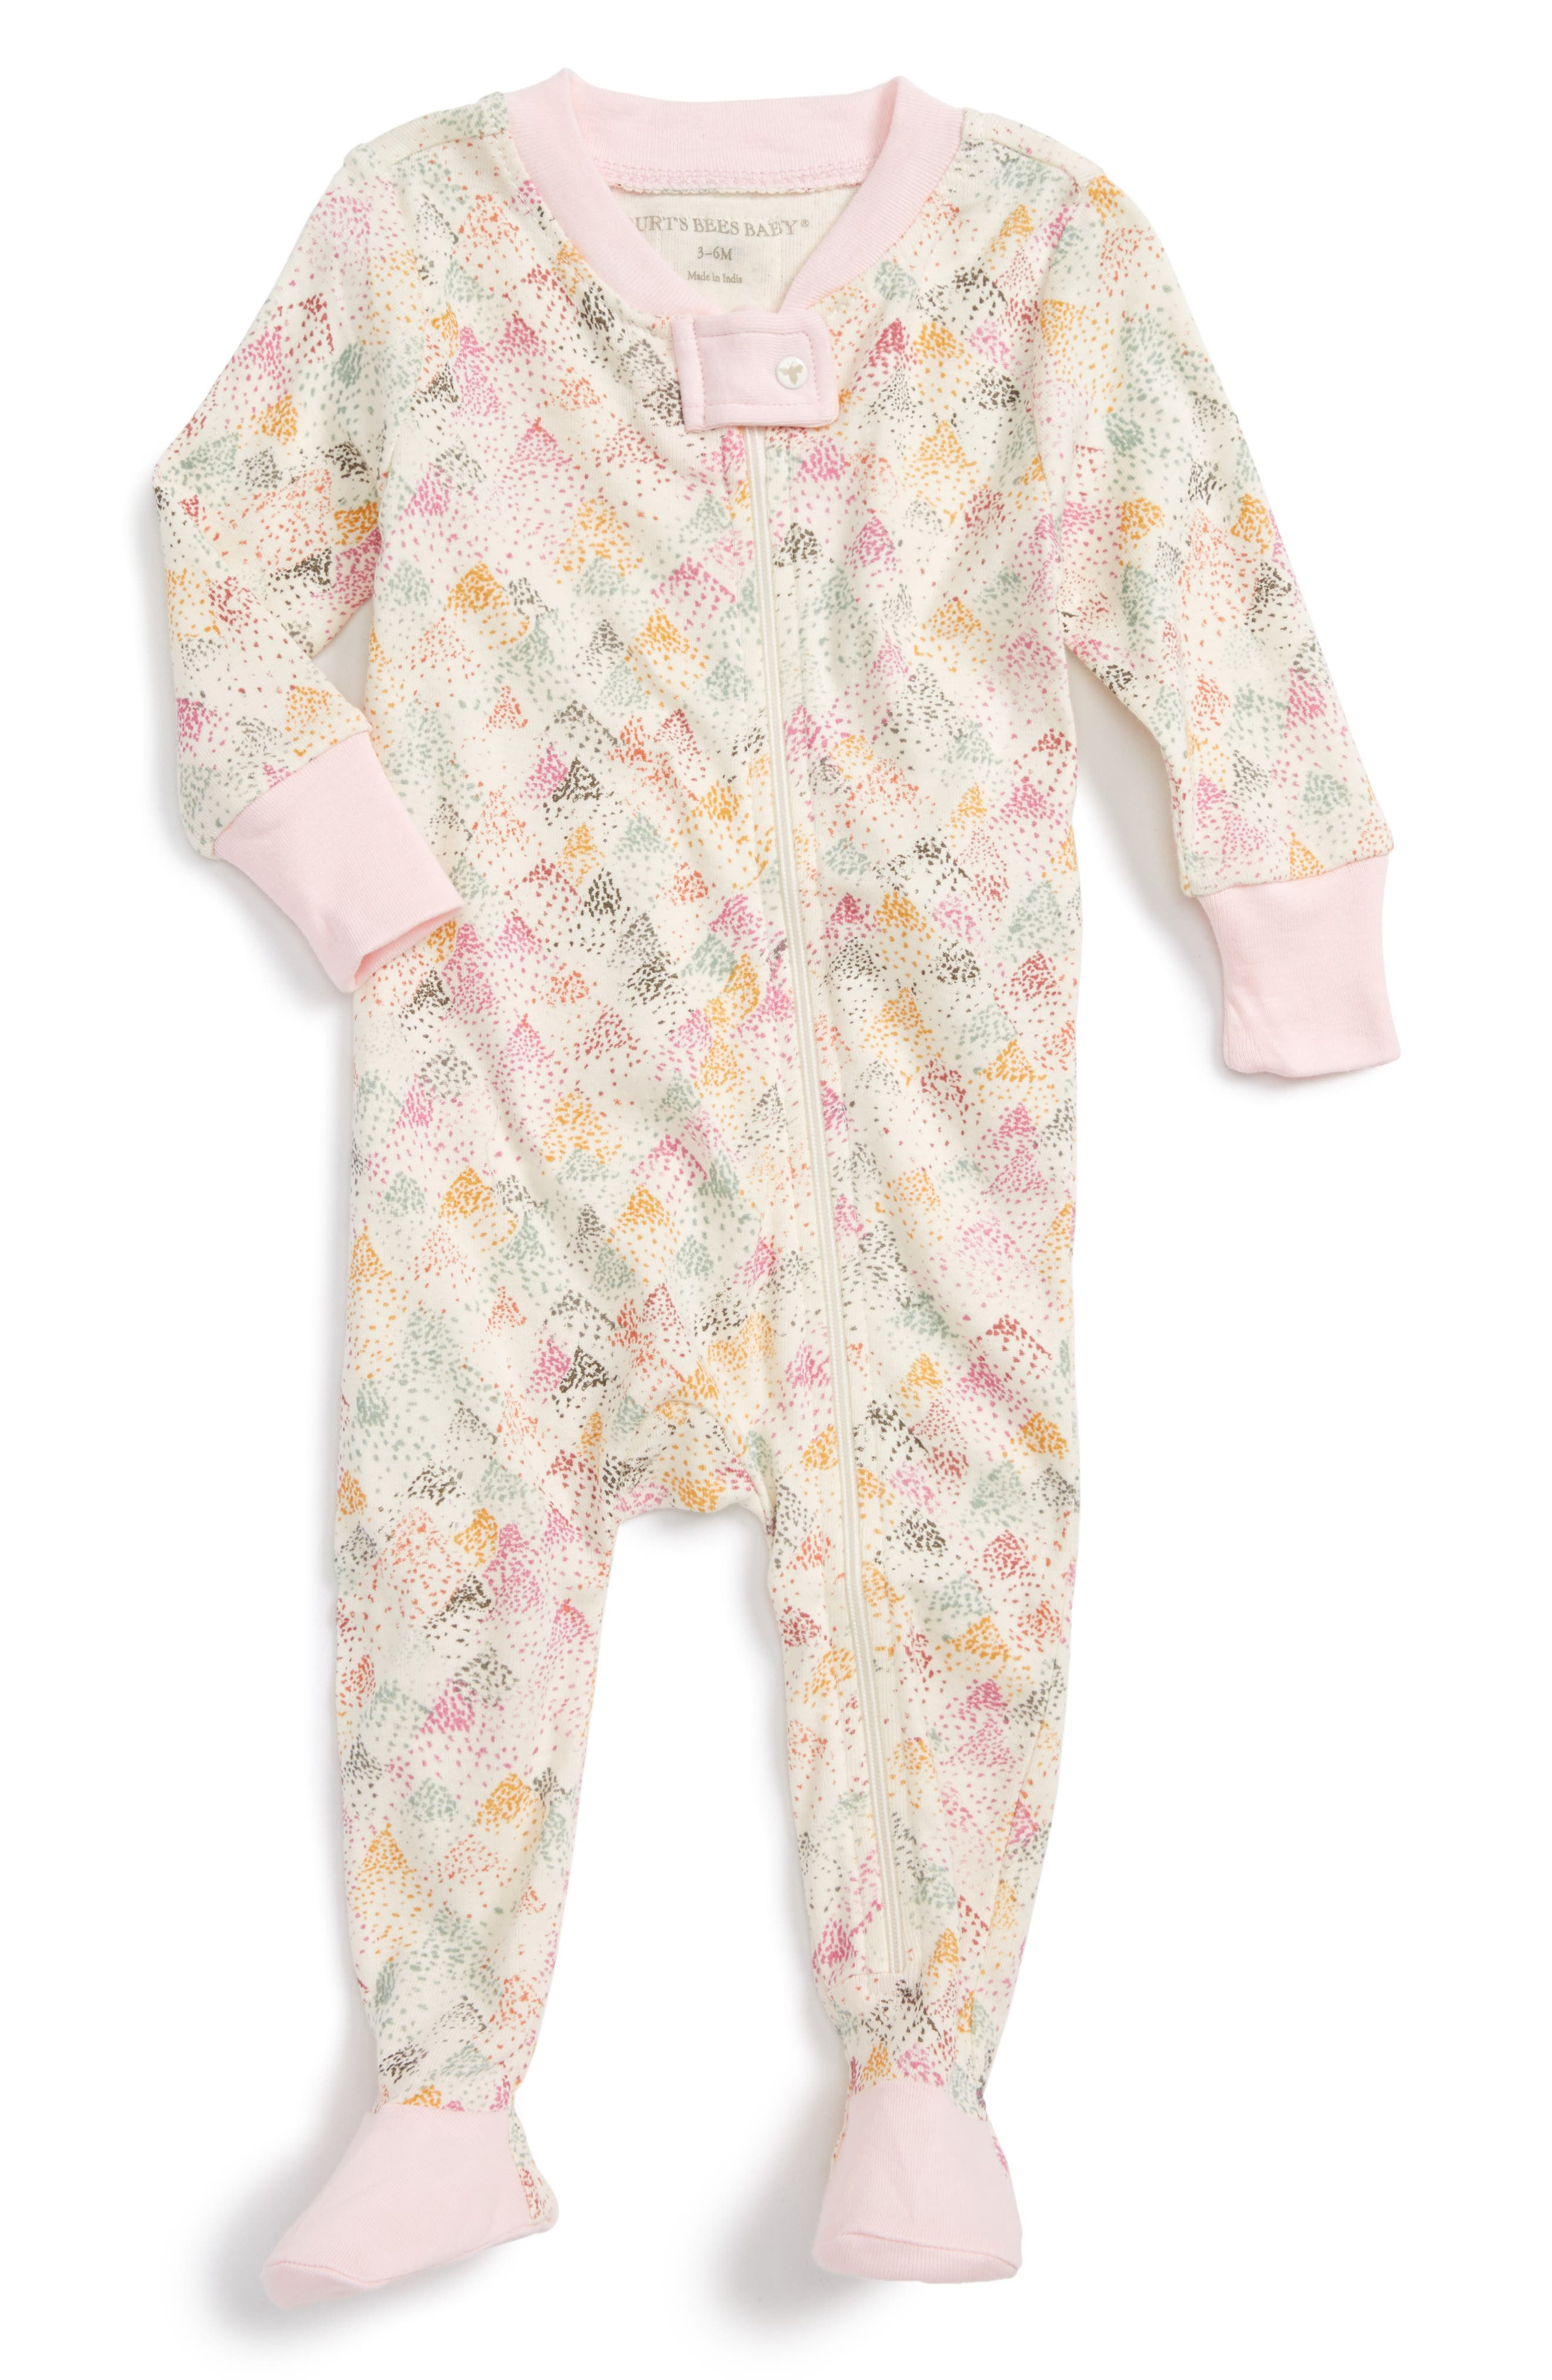 Burt's Bees Baby Dotted Mountain Fitted One-Piece Footed Pajamas (Baby Girls)